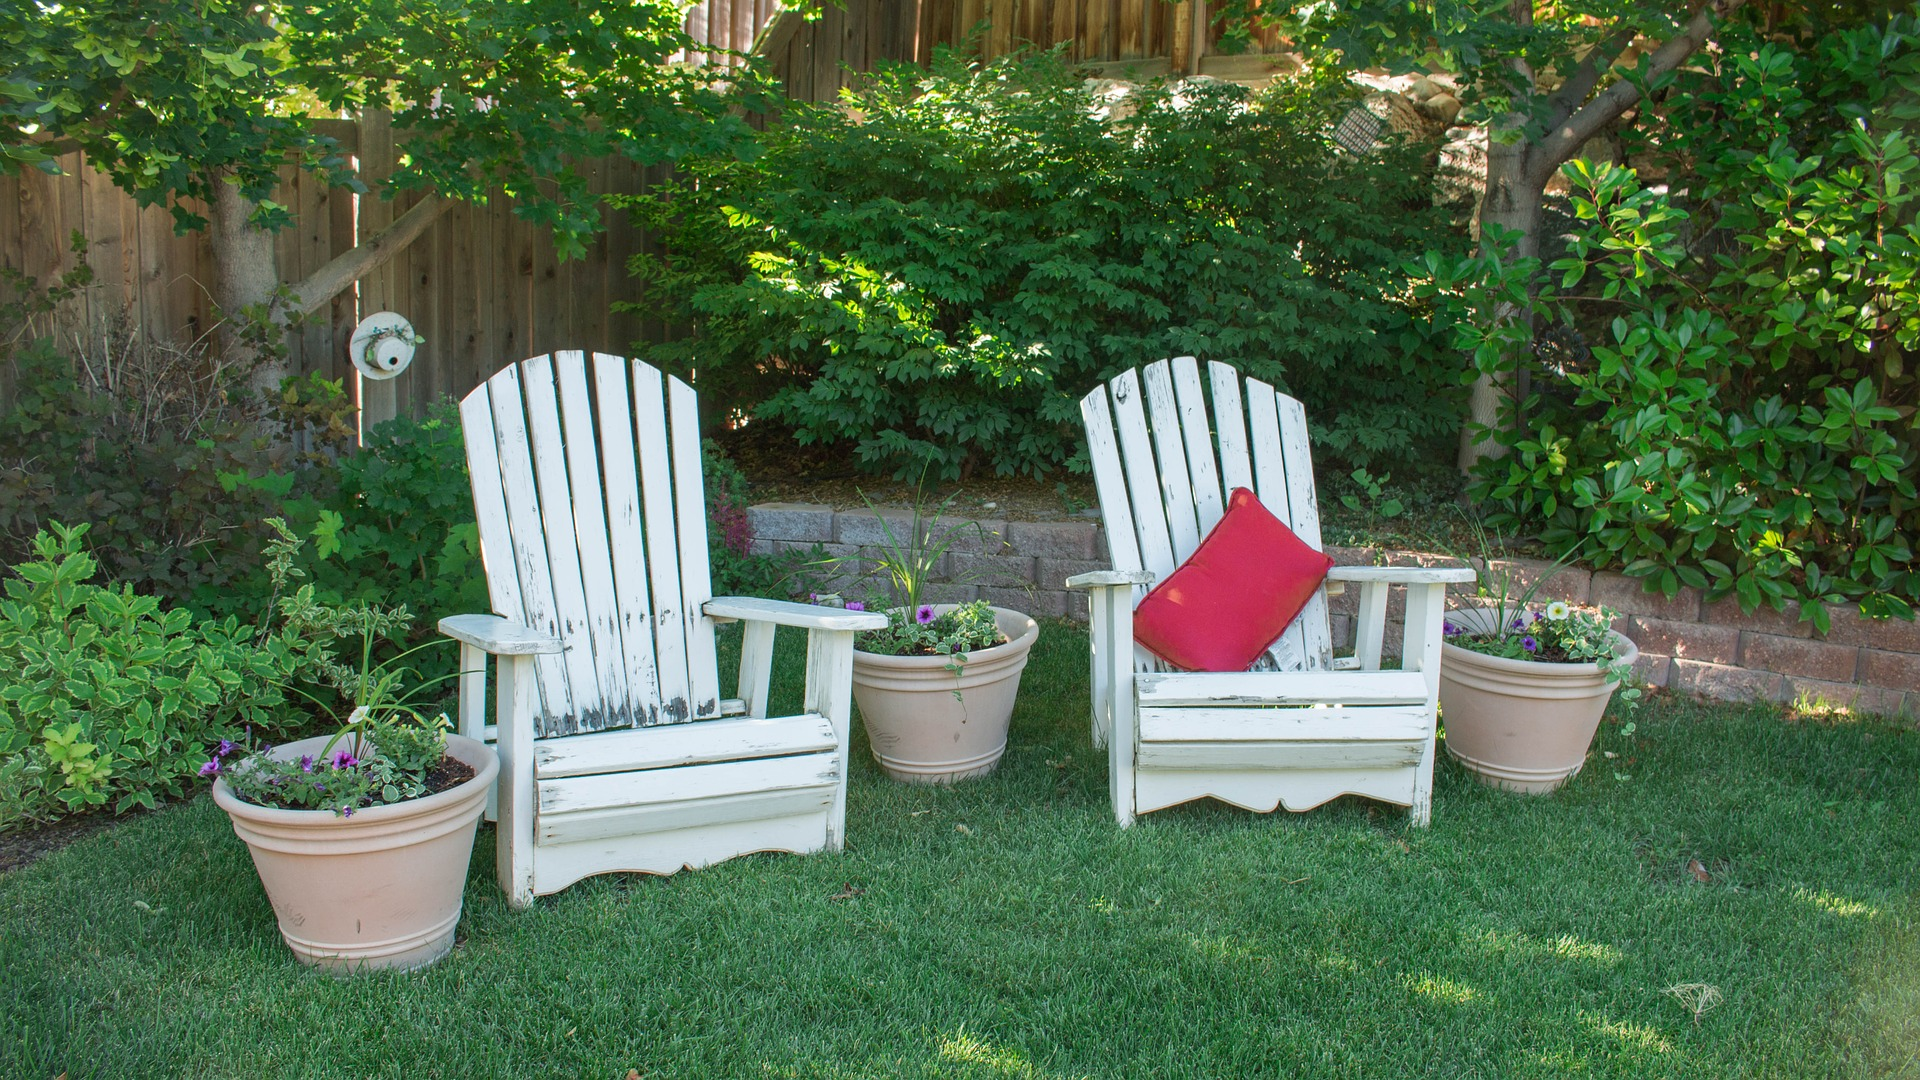 Ways to Extend Your Patio Season Year-Round